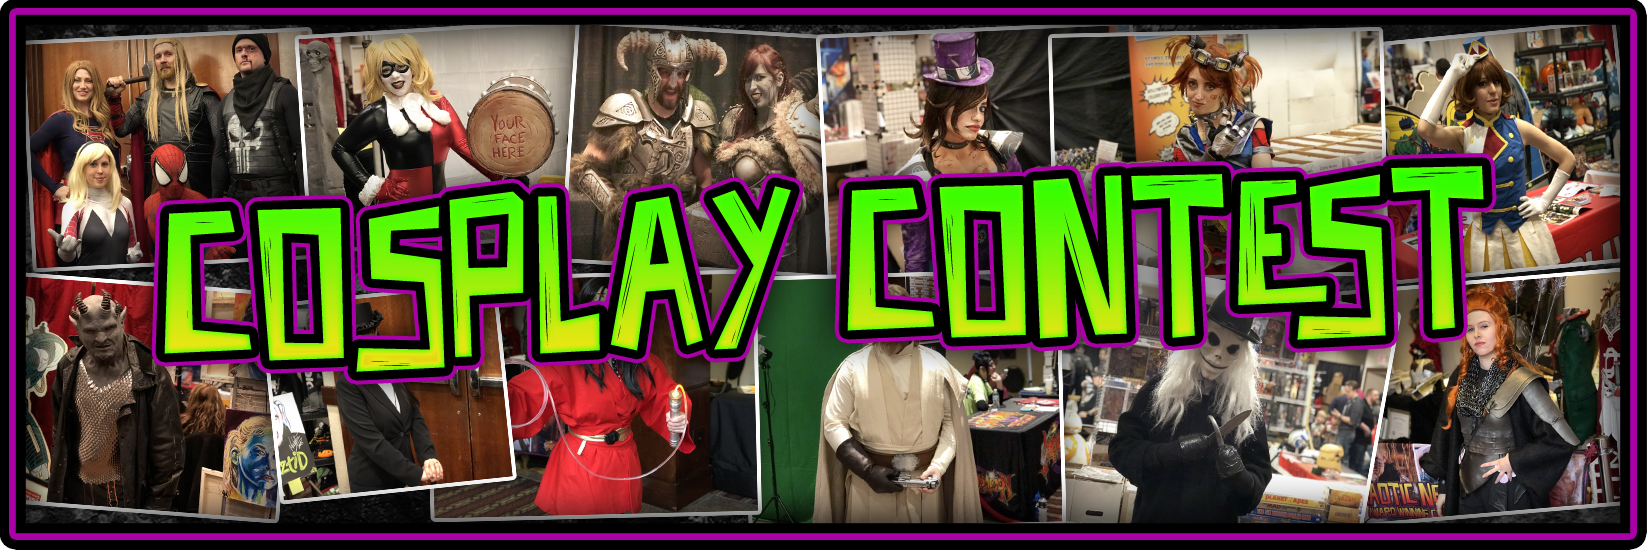 Astronomicon-2-Cosplay-Contest-Banners.png